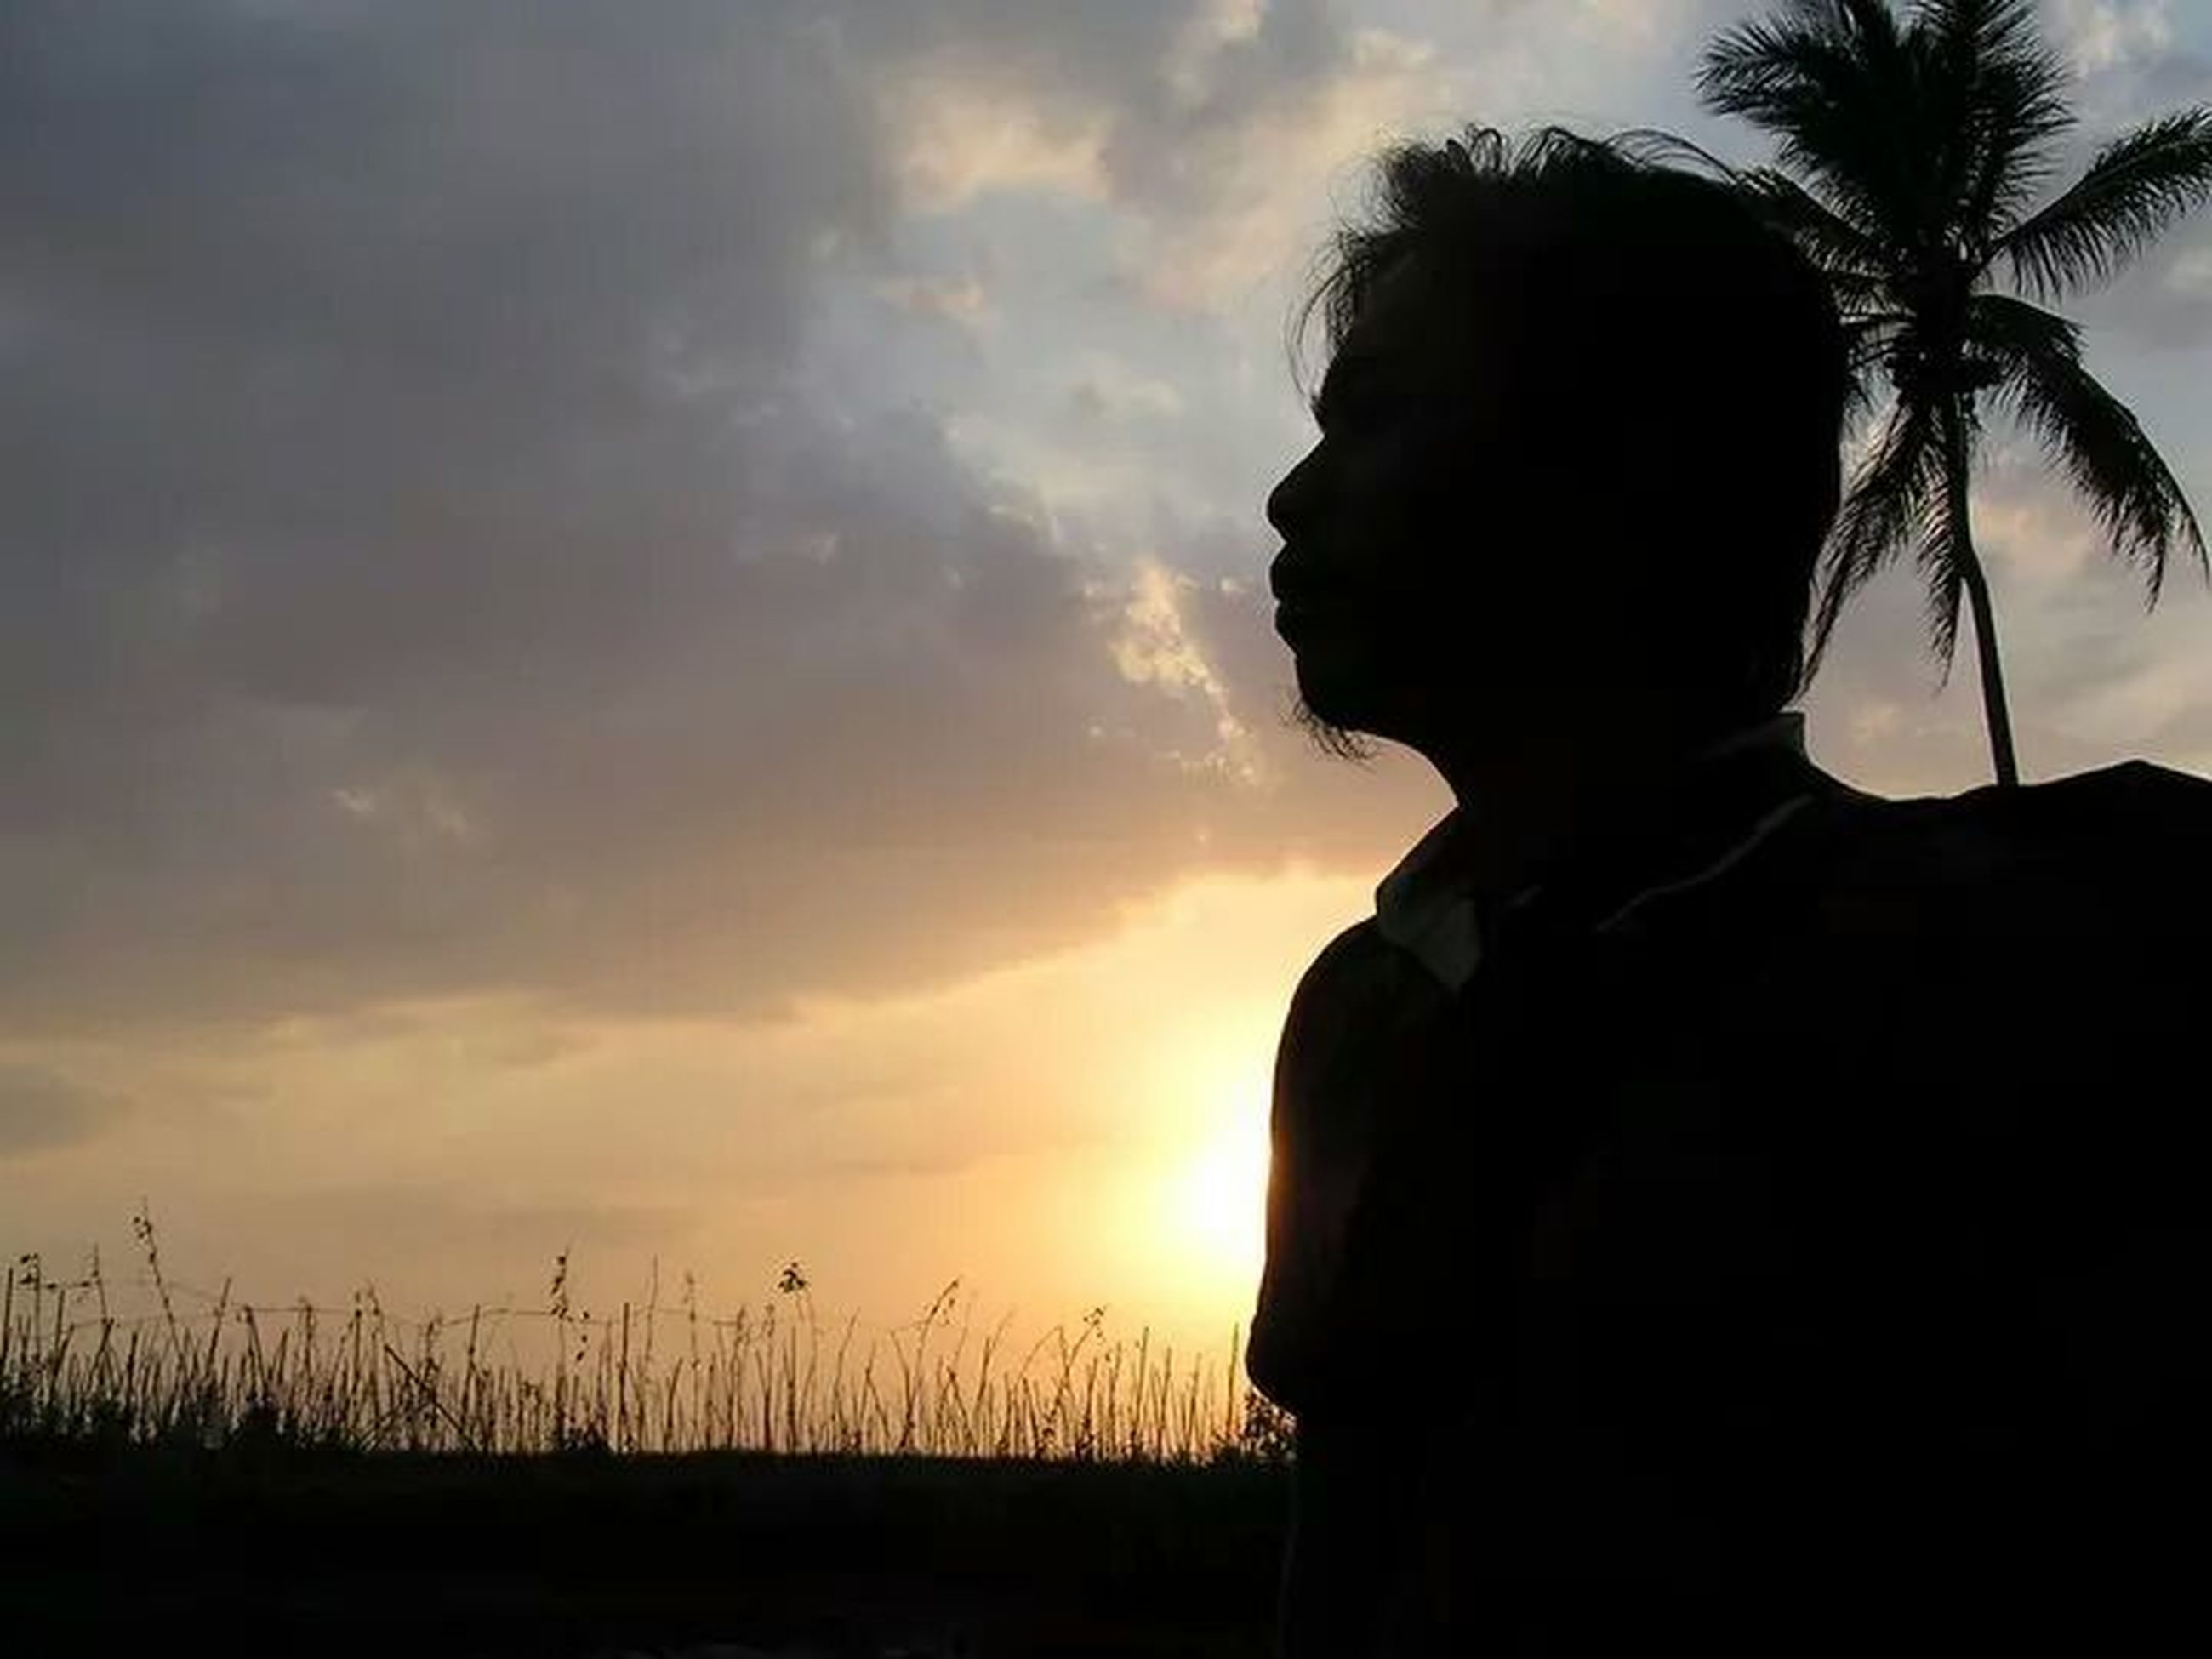 sunset, sky, silhouette, cloud - sky, nature, tranquility, lifestyles, field, beauty in nature, standing, tranquil scene, leisure activity, cloud, landscape, sun, rear view, scenics, waist up